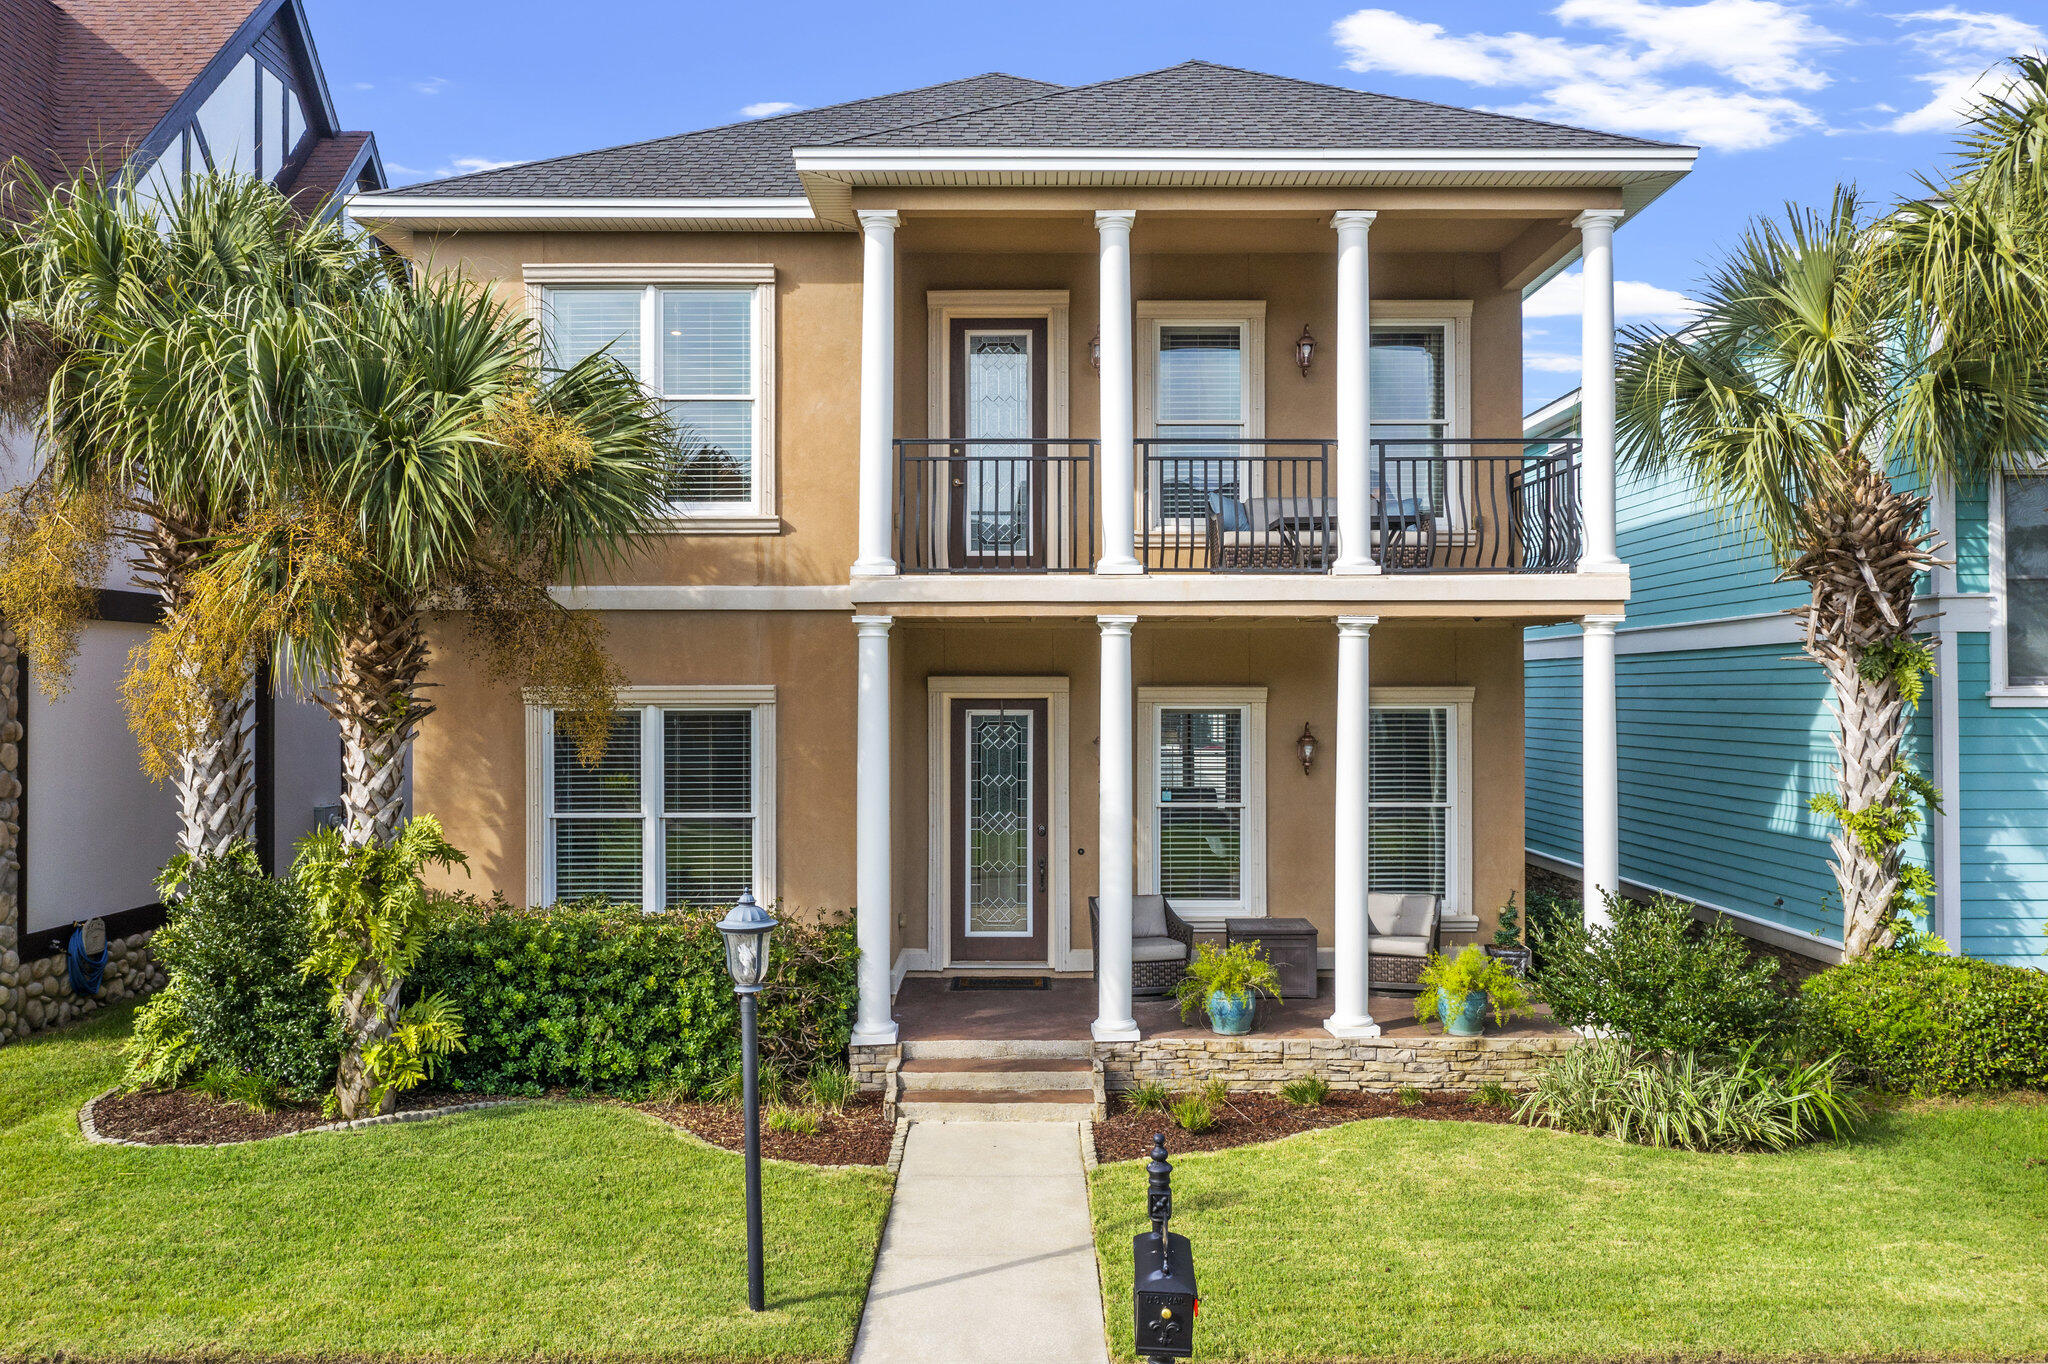 Welcome to 402 Savannah Park Way. This beautiful 4 bedroom, 4 bathroom craftsman home is located in